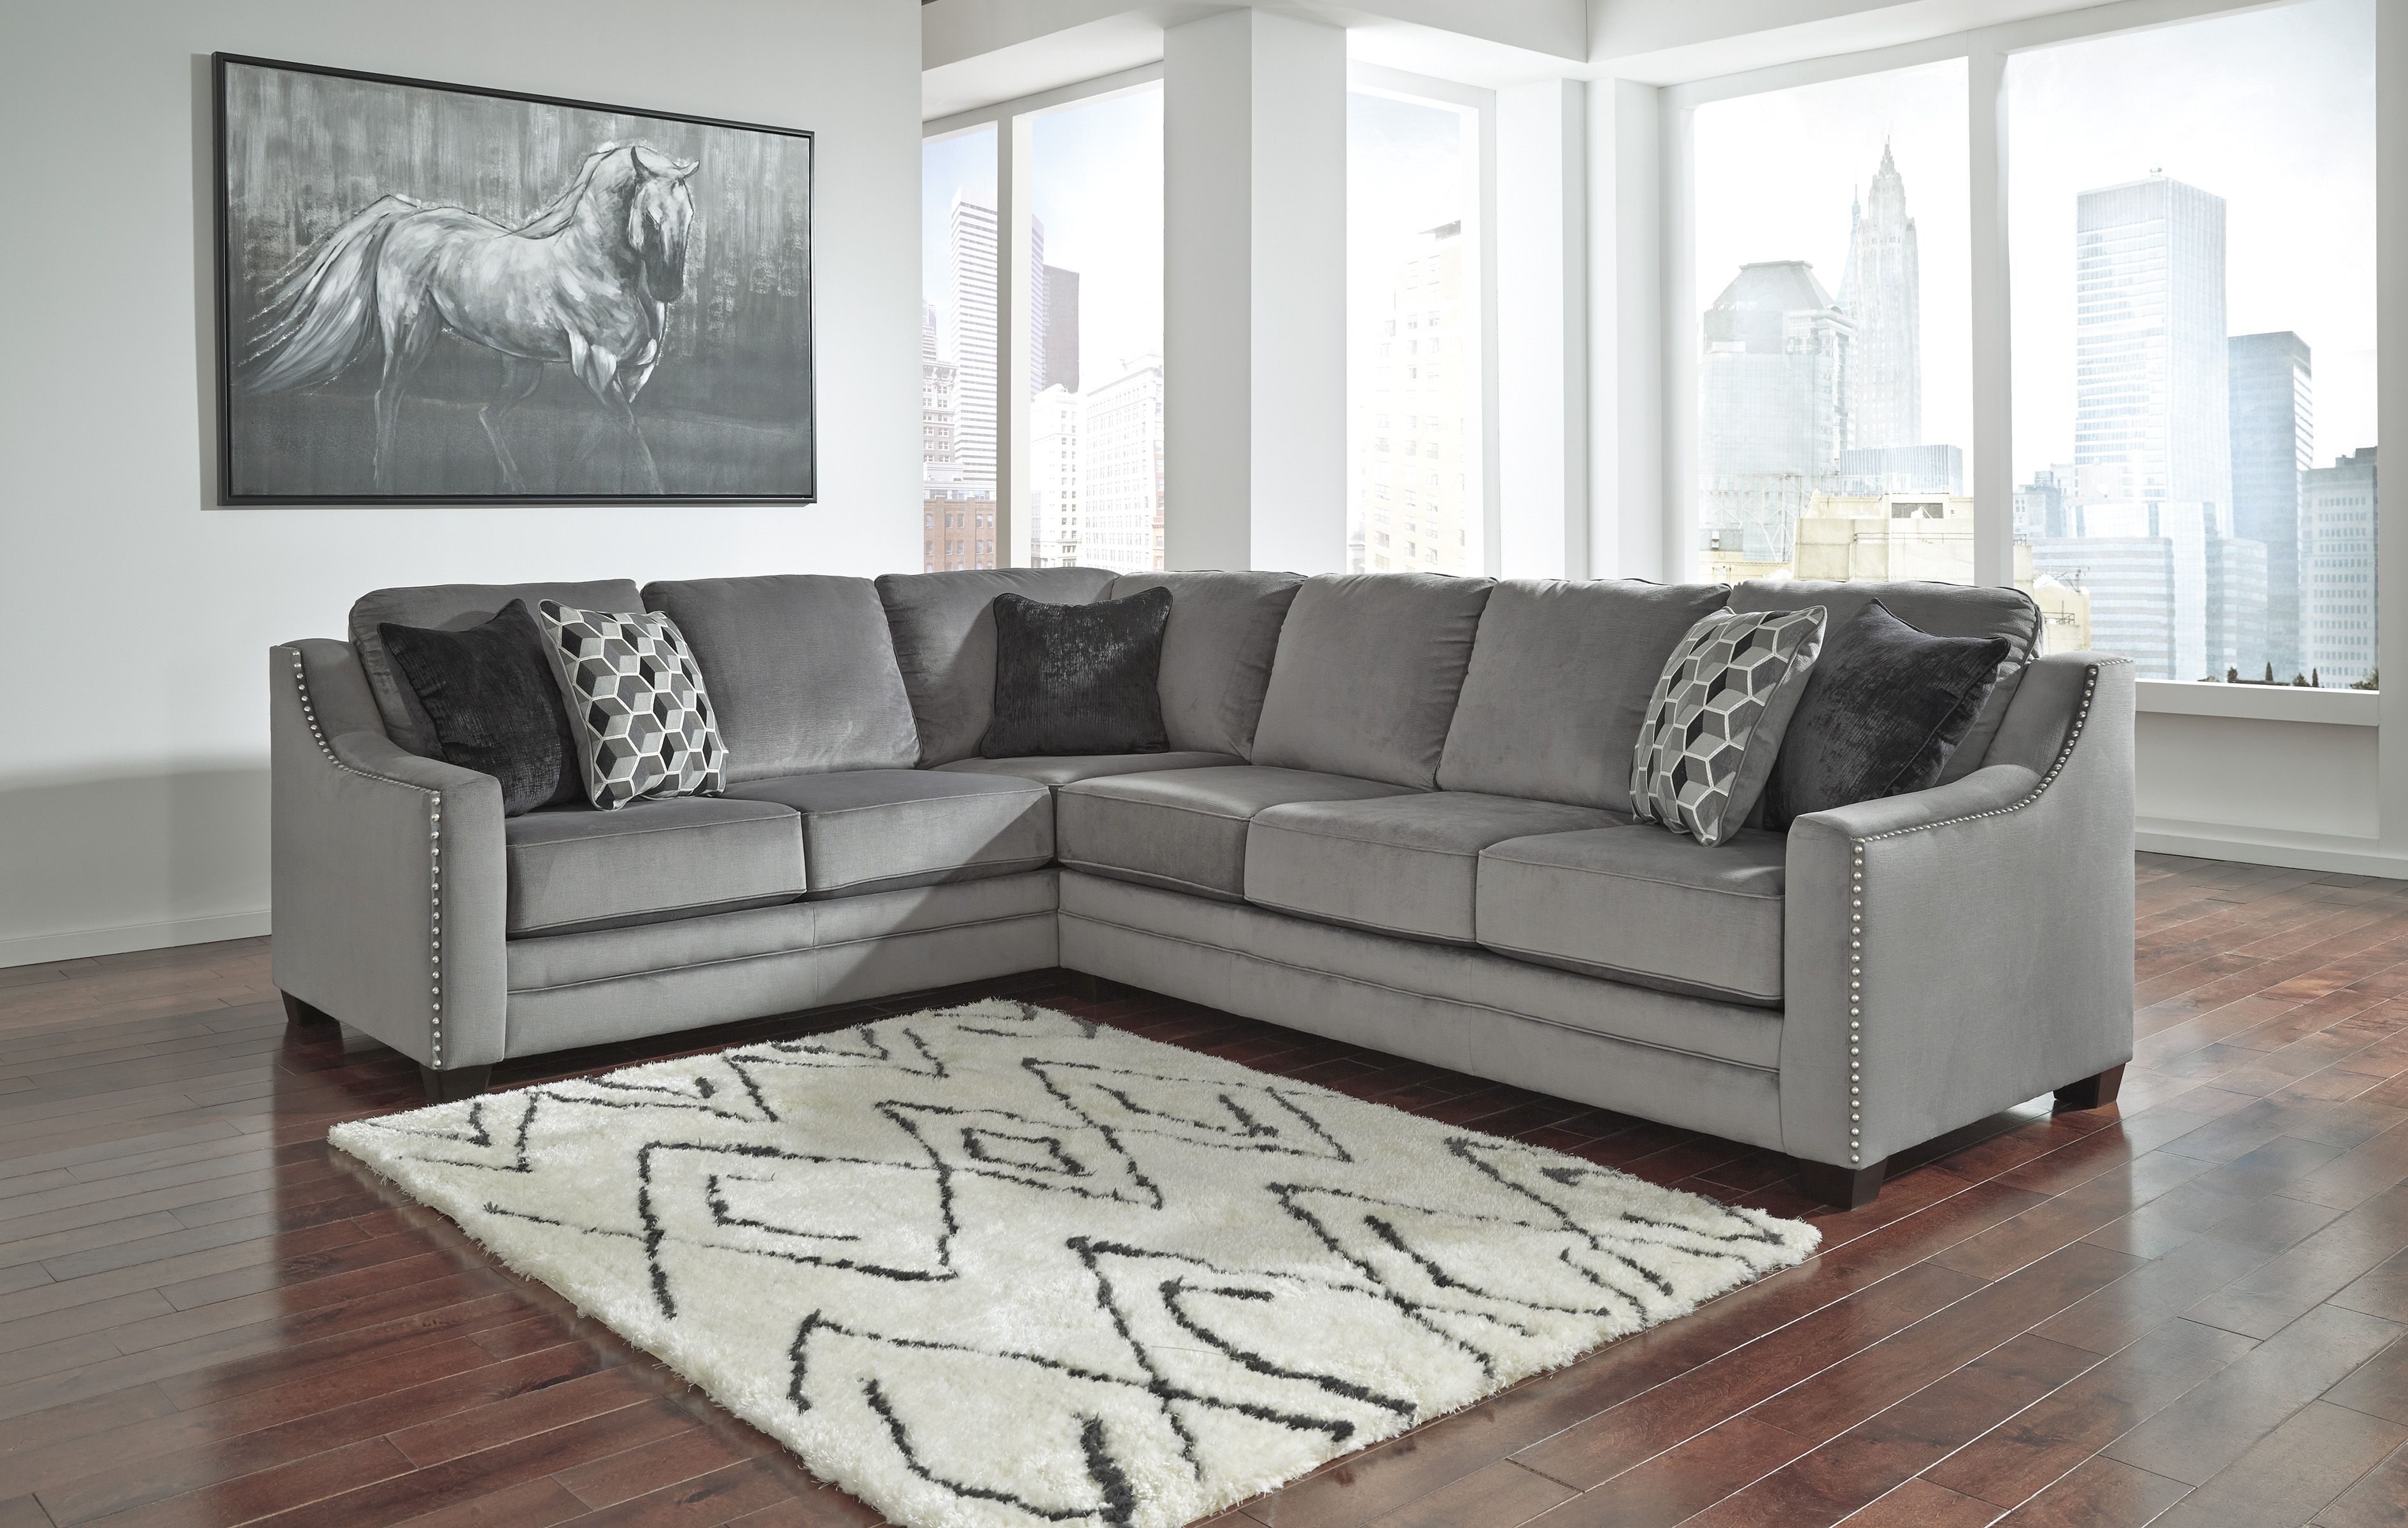 Meubles Ashley Floride Bicknell Charcoal 86204 48 Ashley Sectional Sofa House Deco